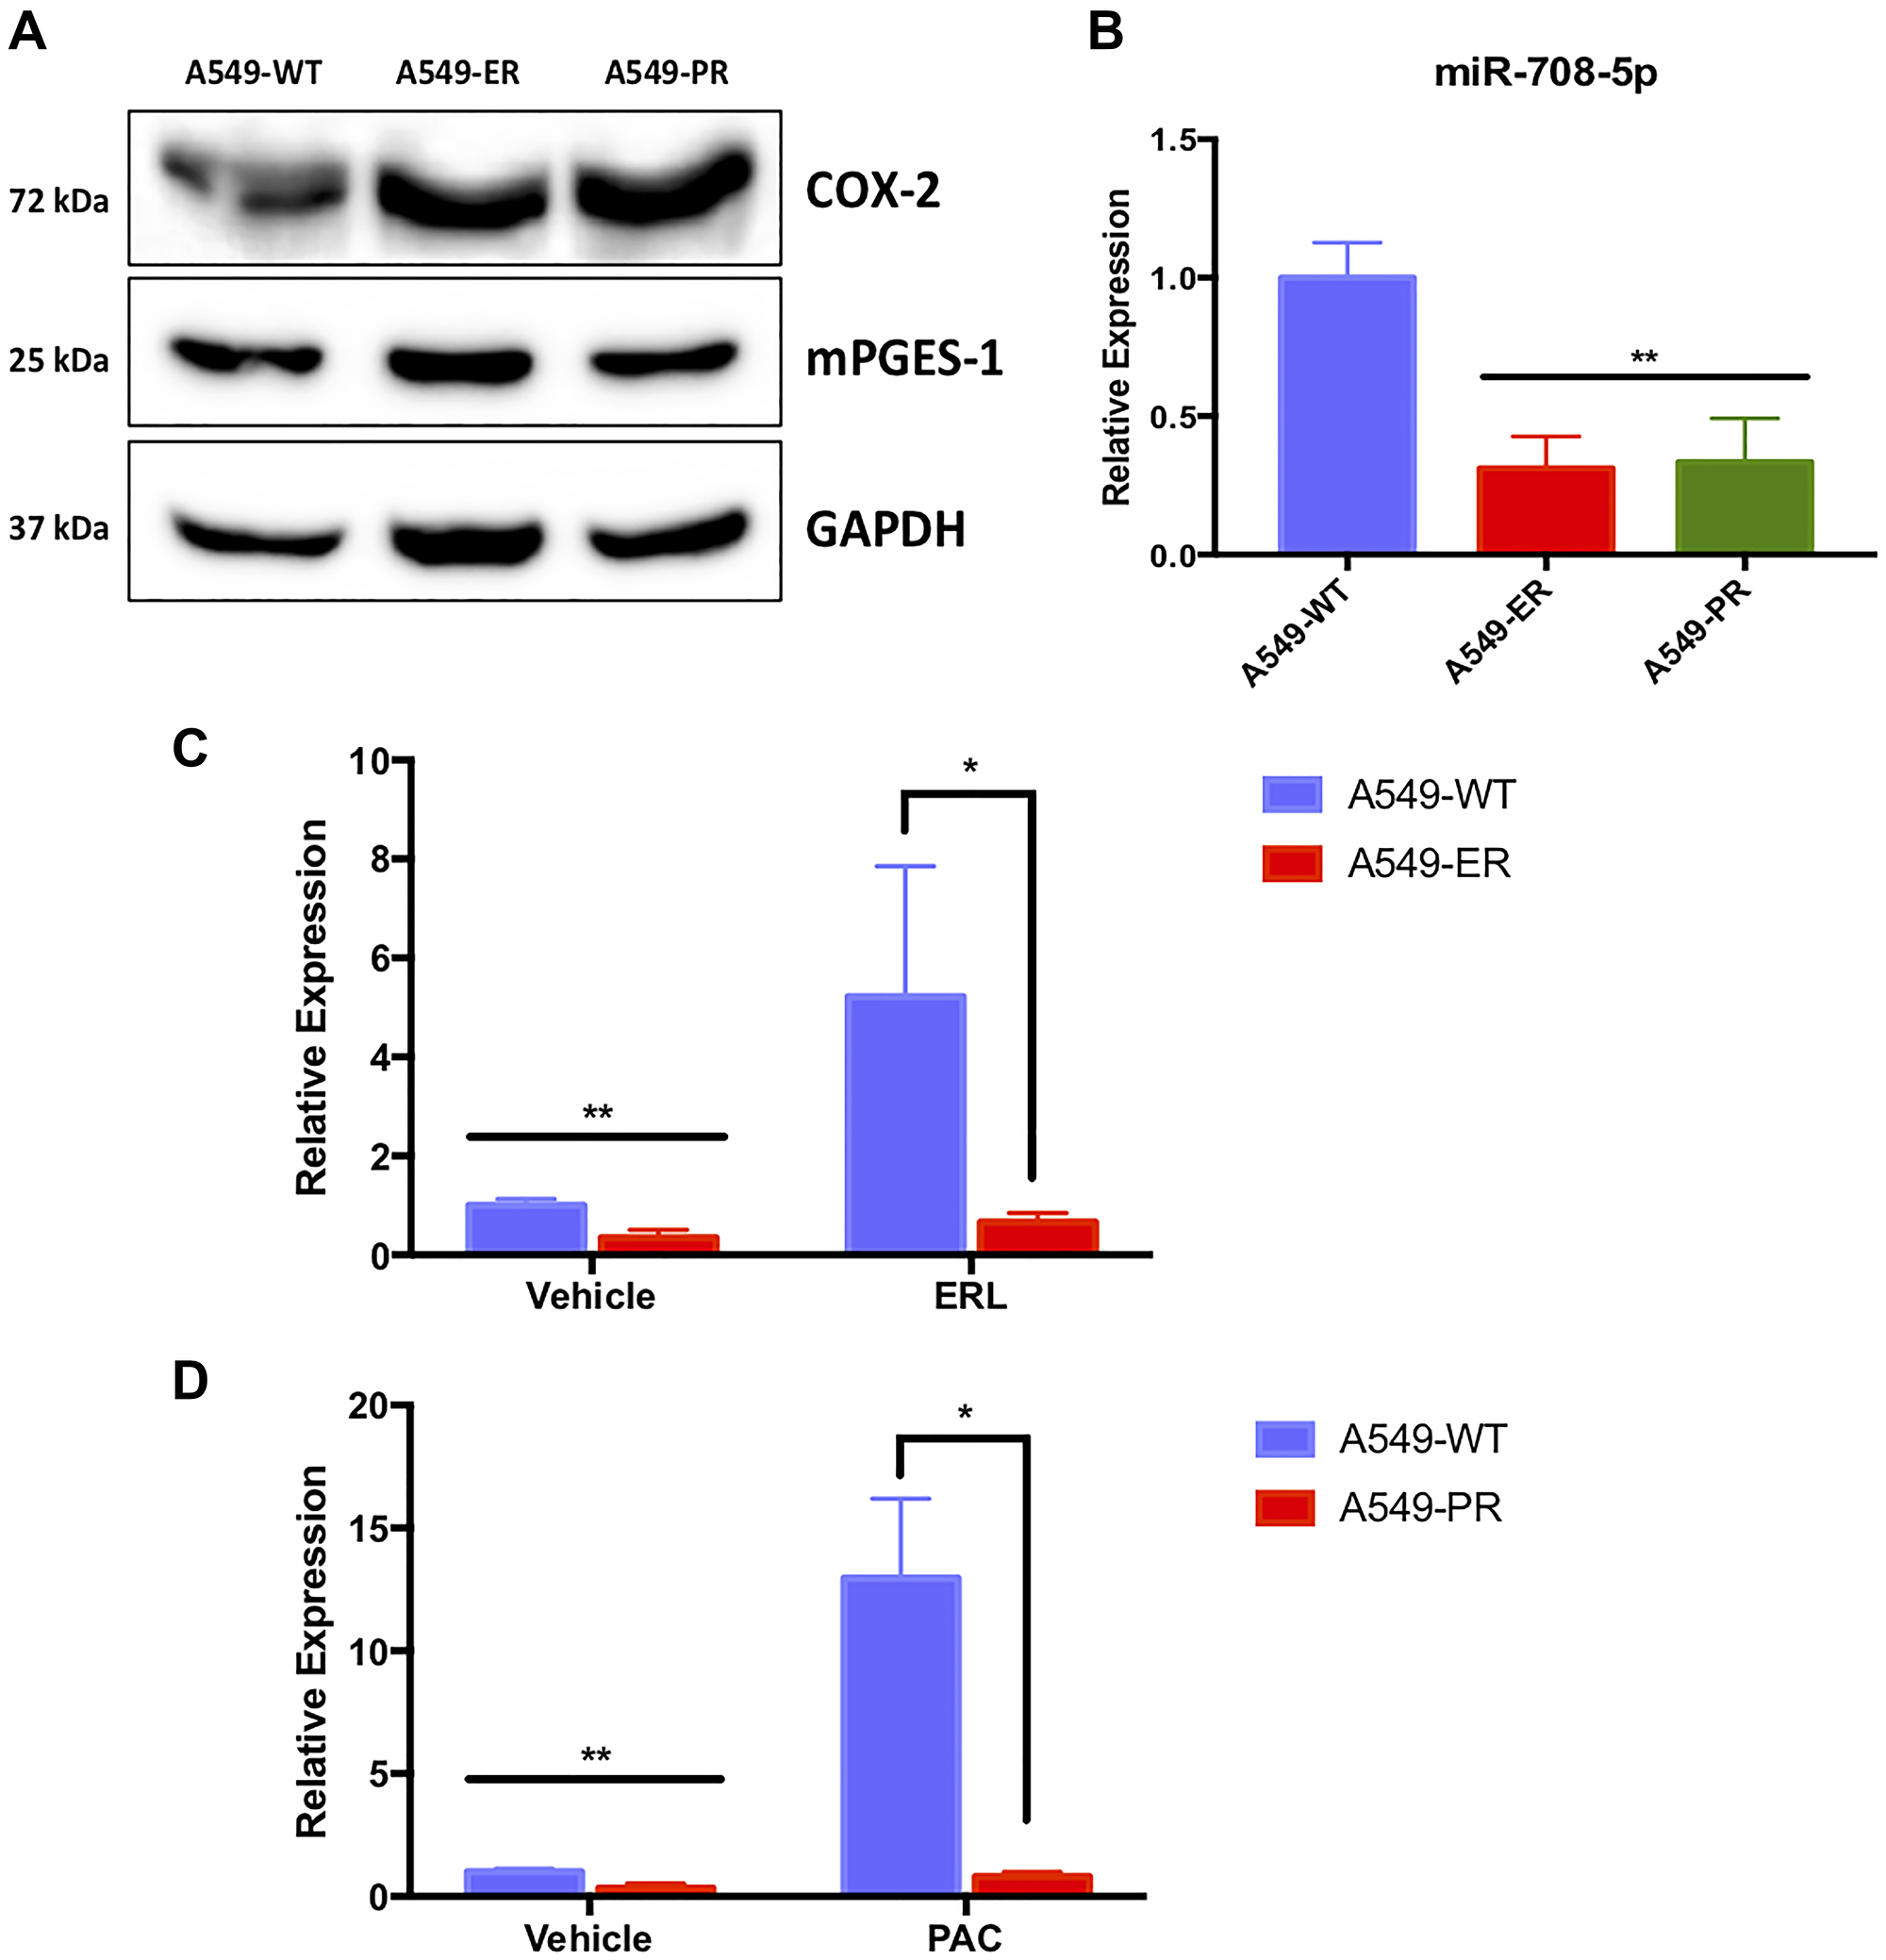 A549-ER and A549-PR cells have altered miR-708-5p and AA pathway expression.